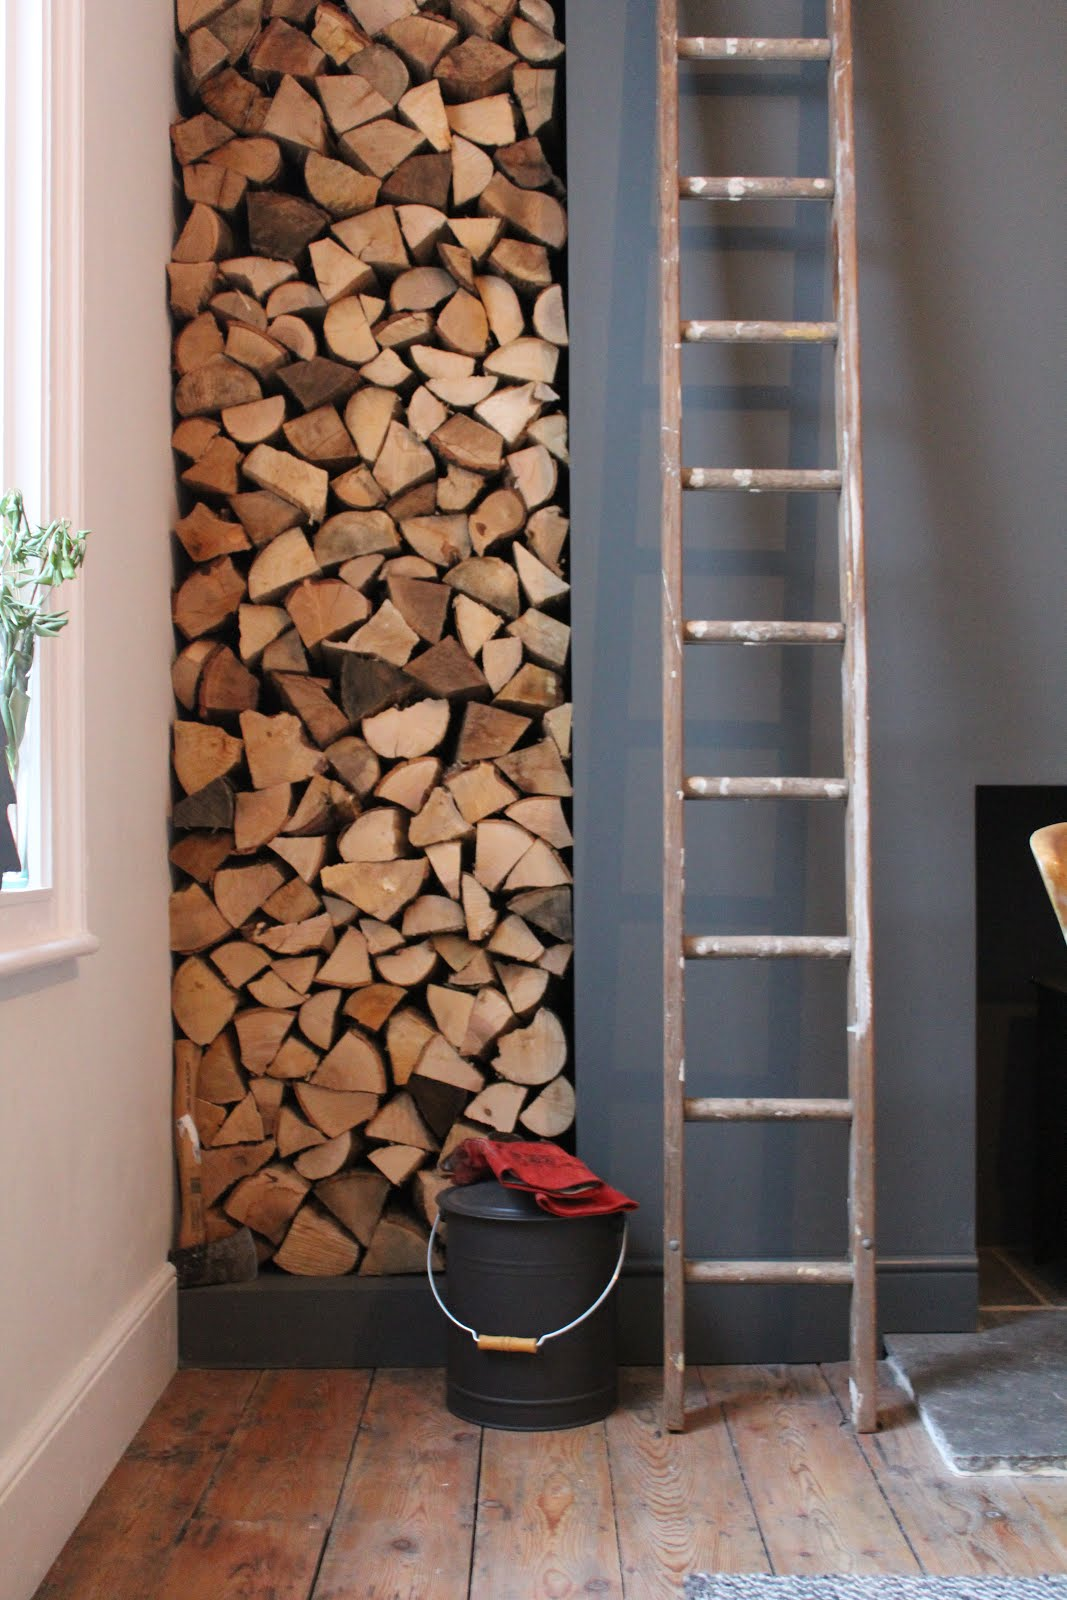 Feature Log Stack in Dining Room